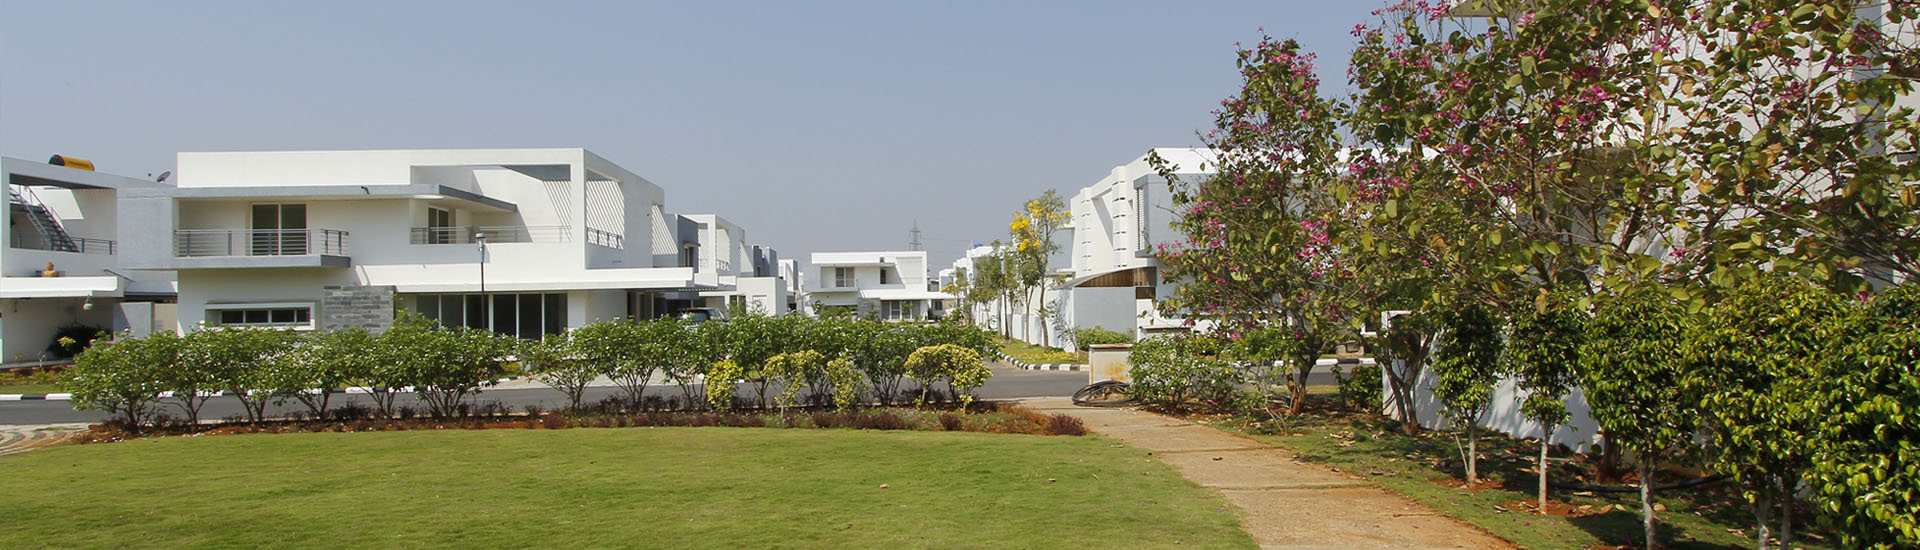 Independent Villa in Hyderabad